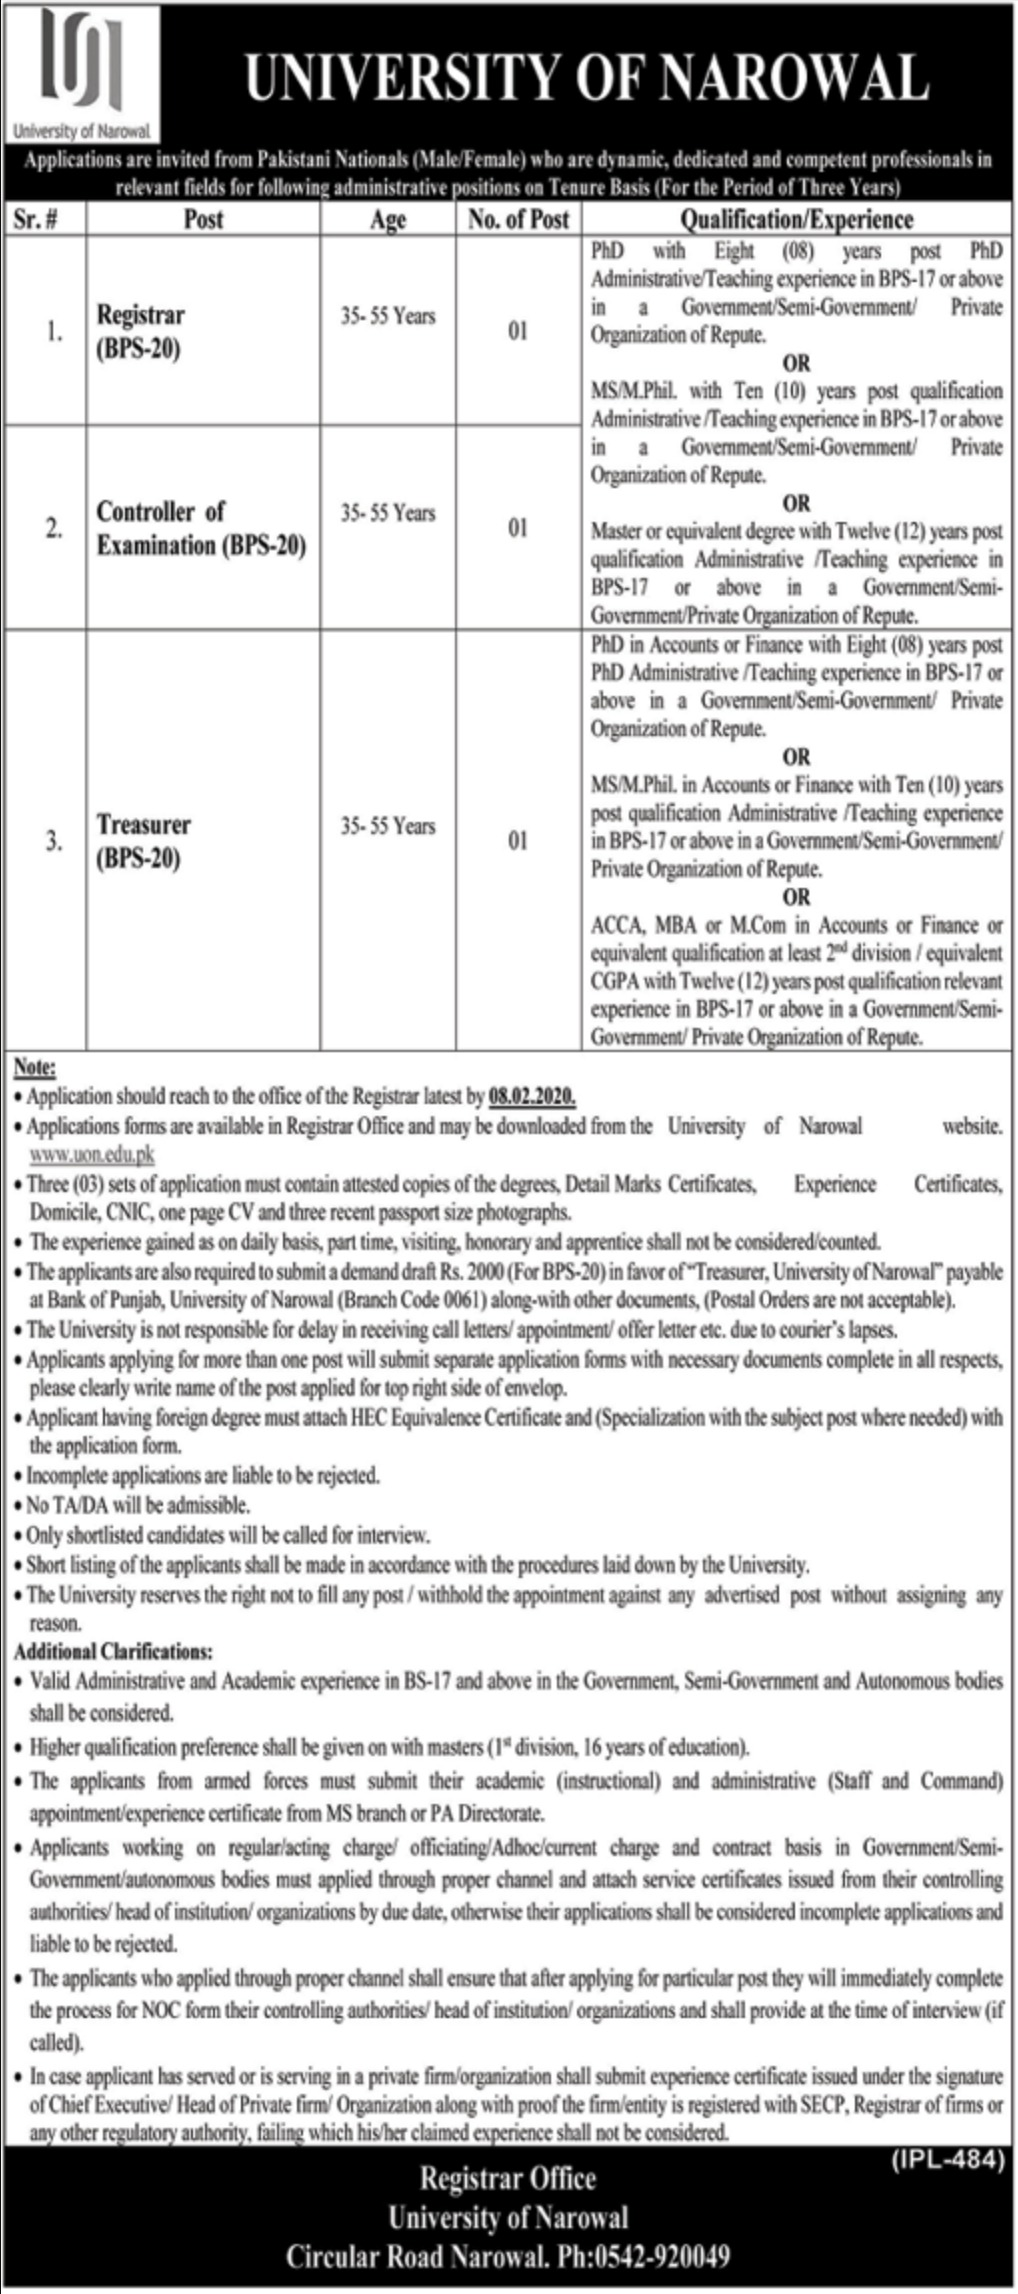 University of Narowal Jobs 2020 Download Application Form